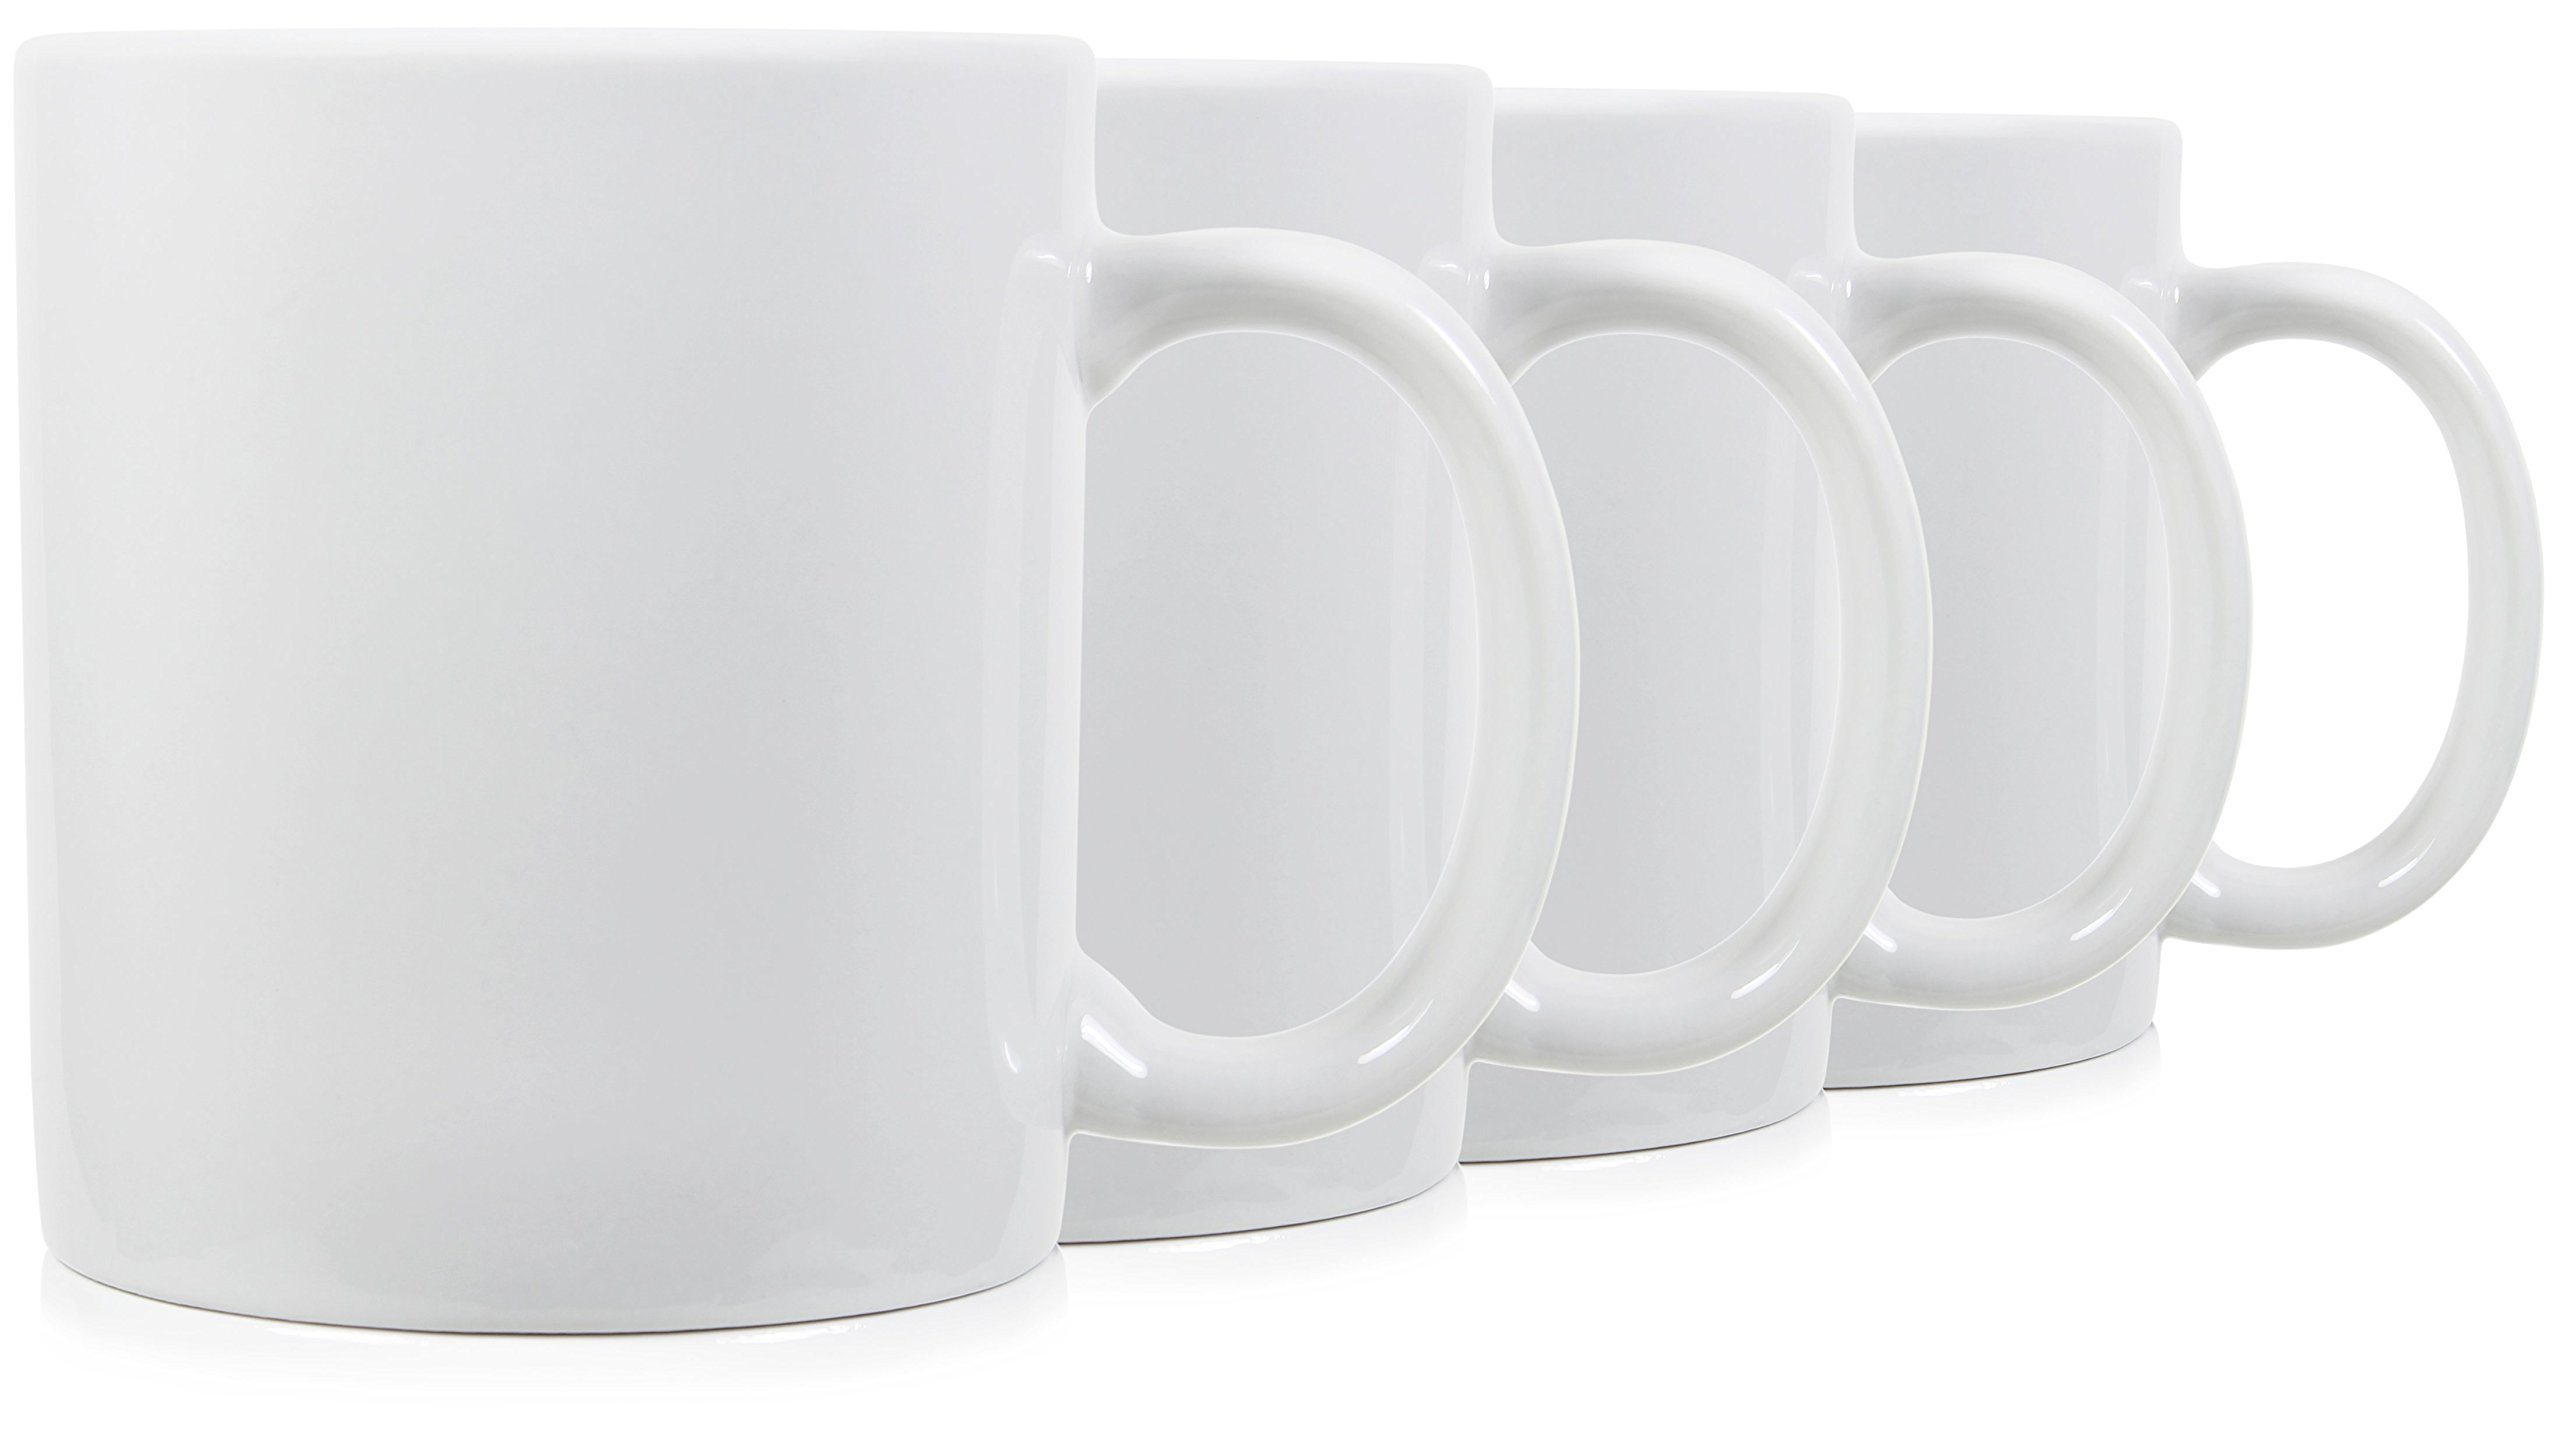 Serami 20oz Extra Large Classic Mugs for Coffee or Tea. Large Handle and Ceramic Construction, Set of 4